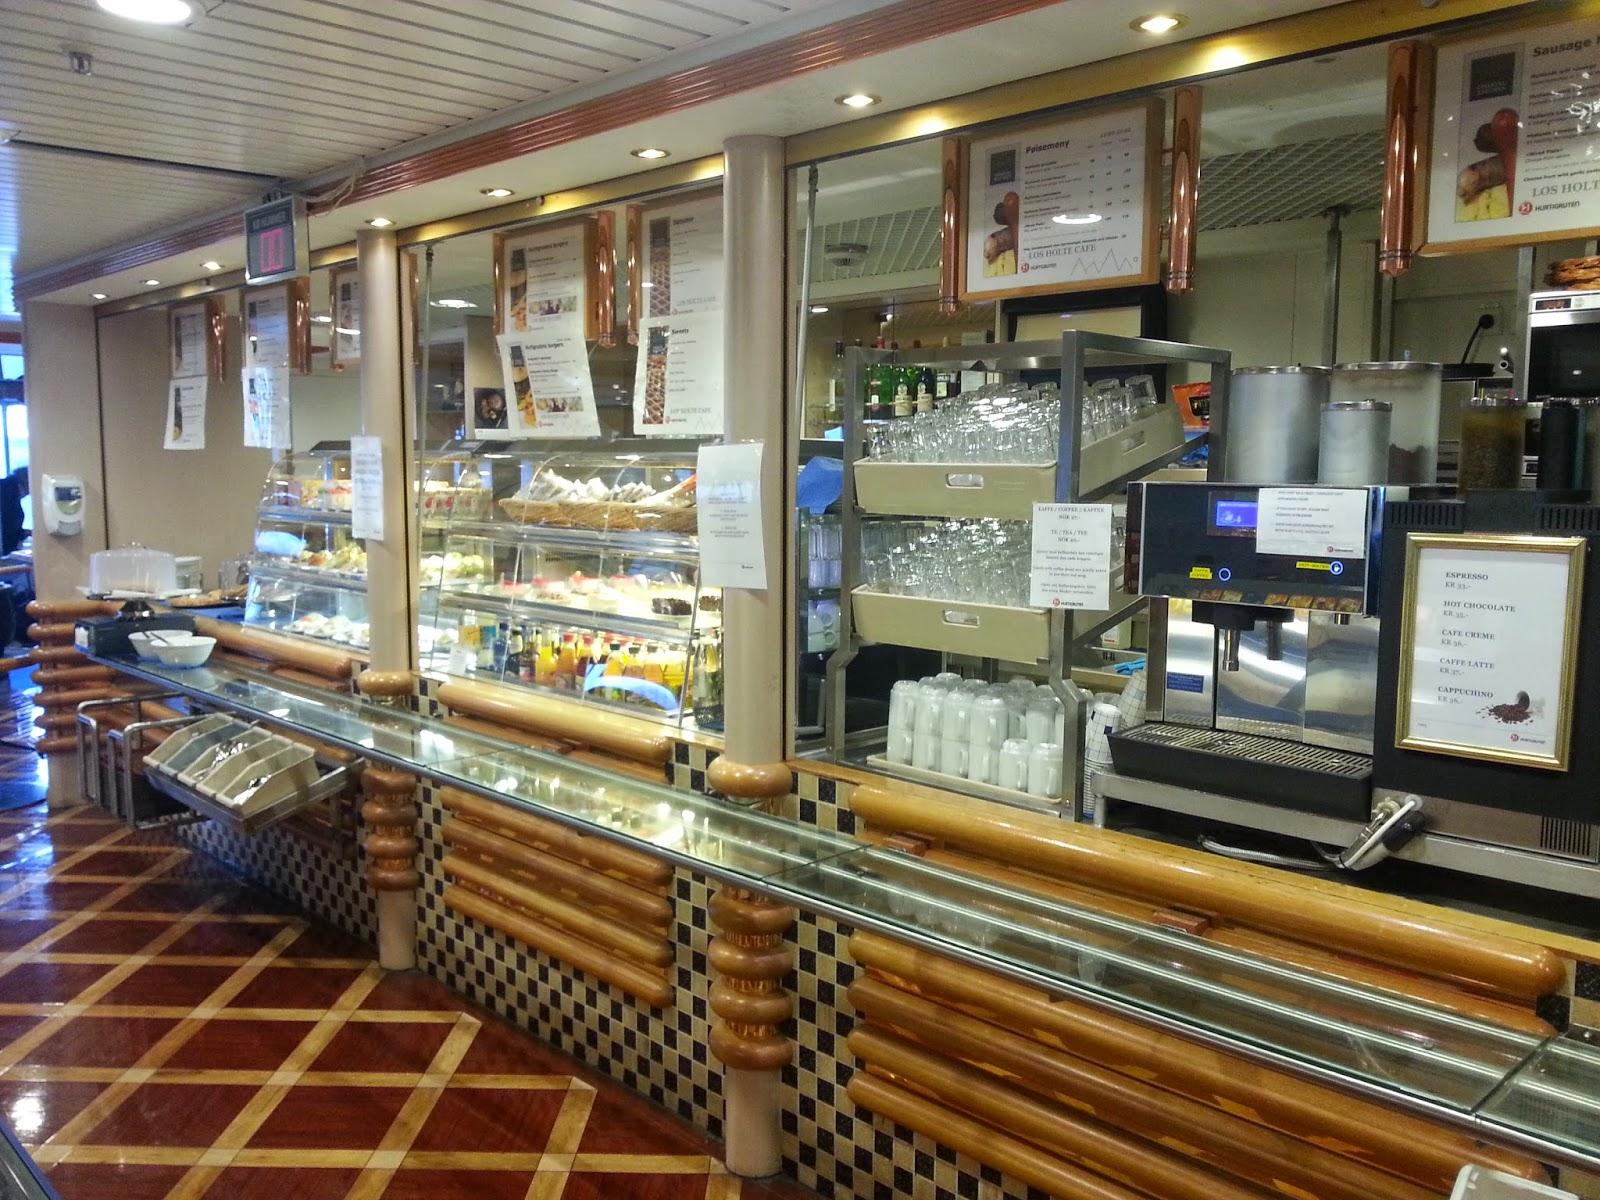 Hurtigruten MS Richard With - Los Holtes Cafe